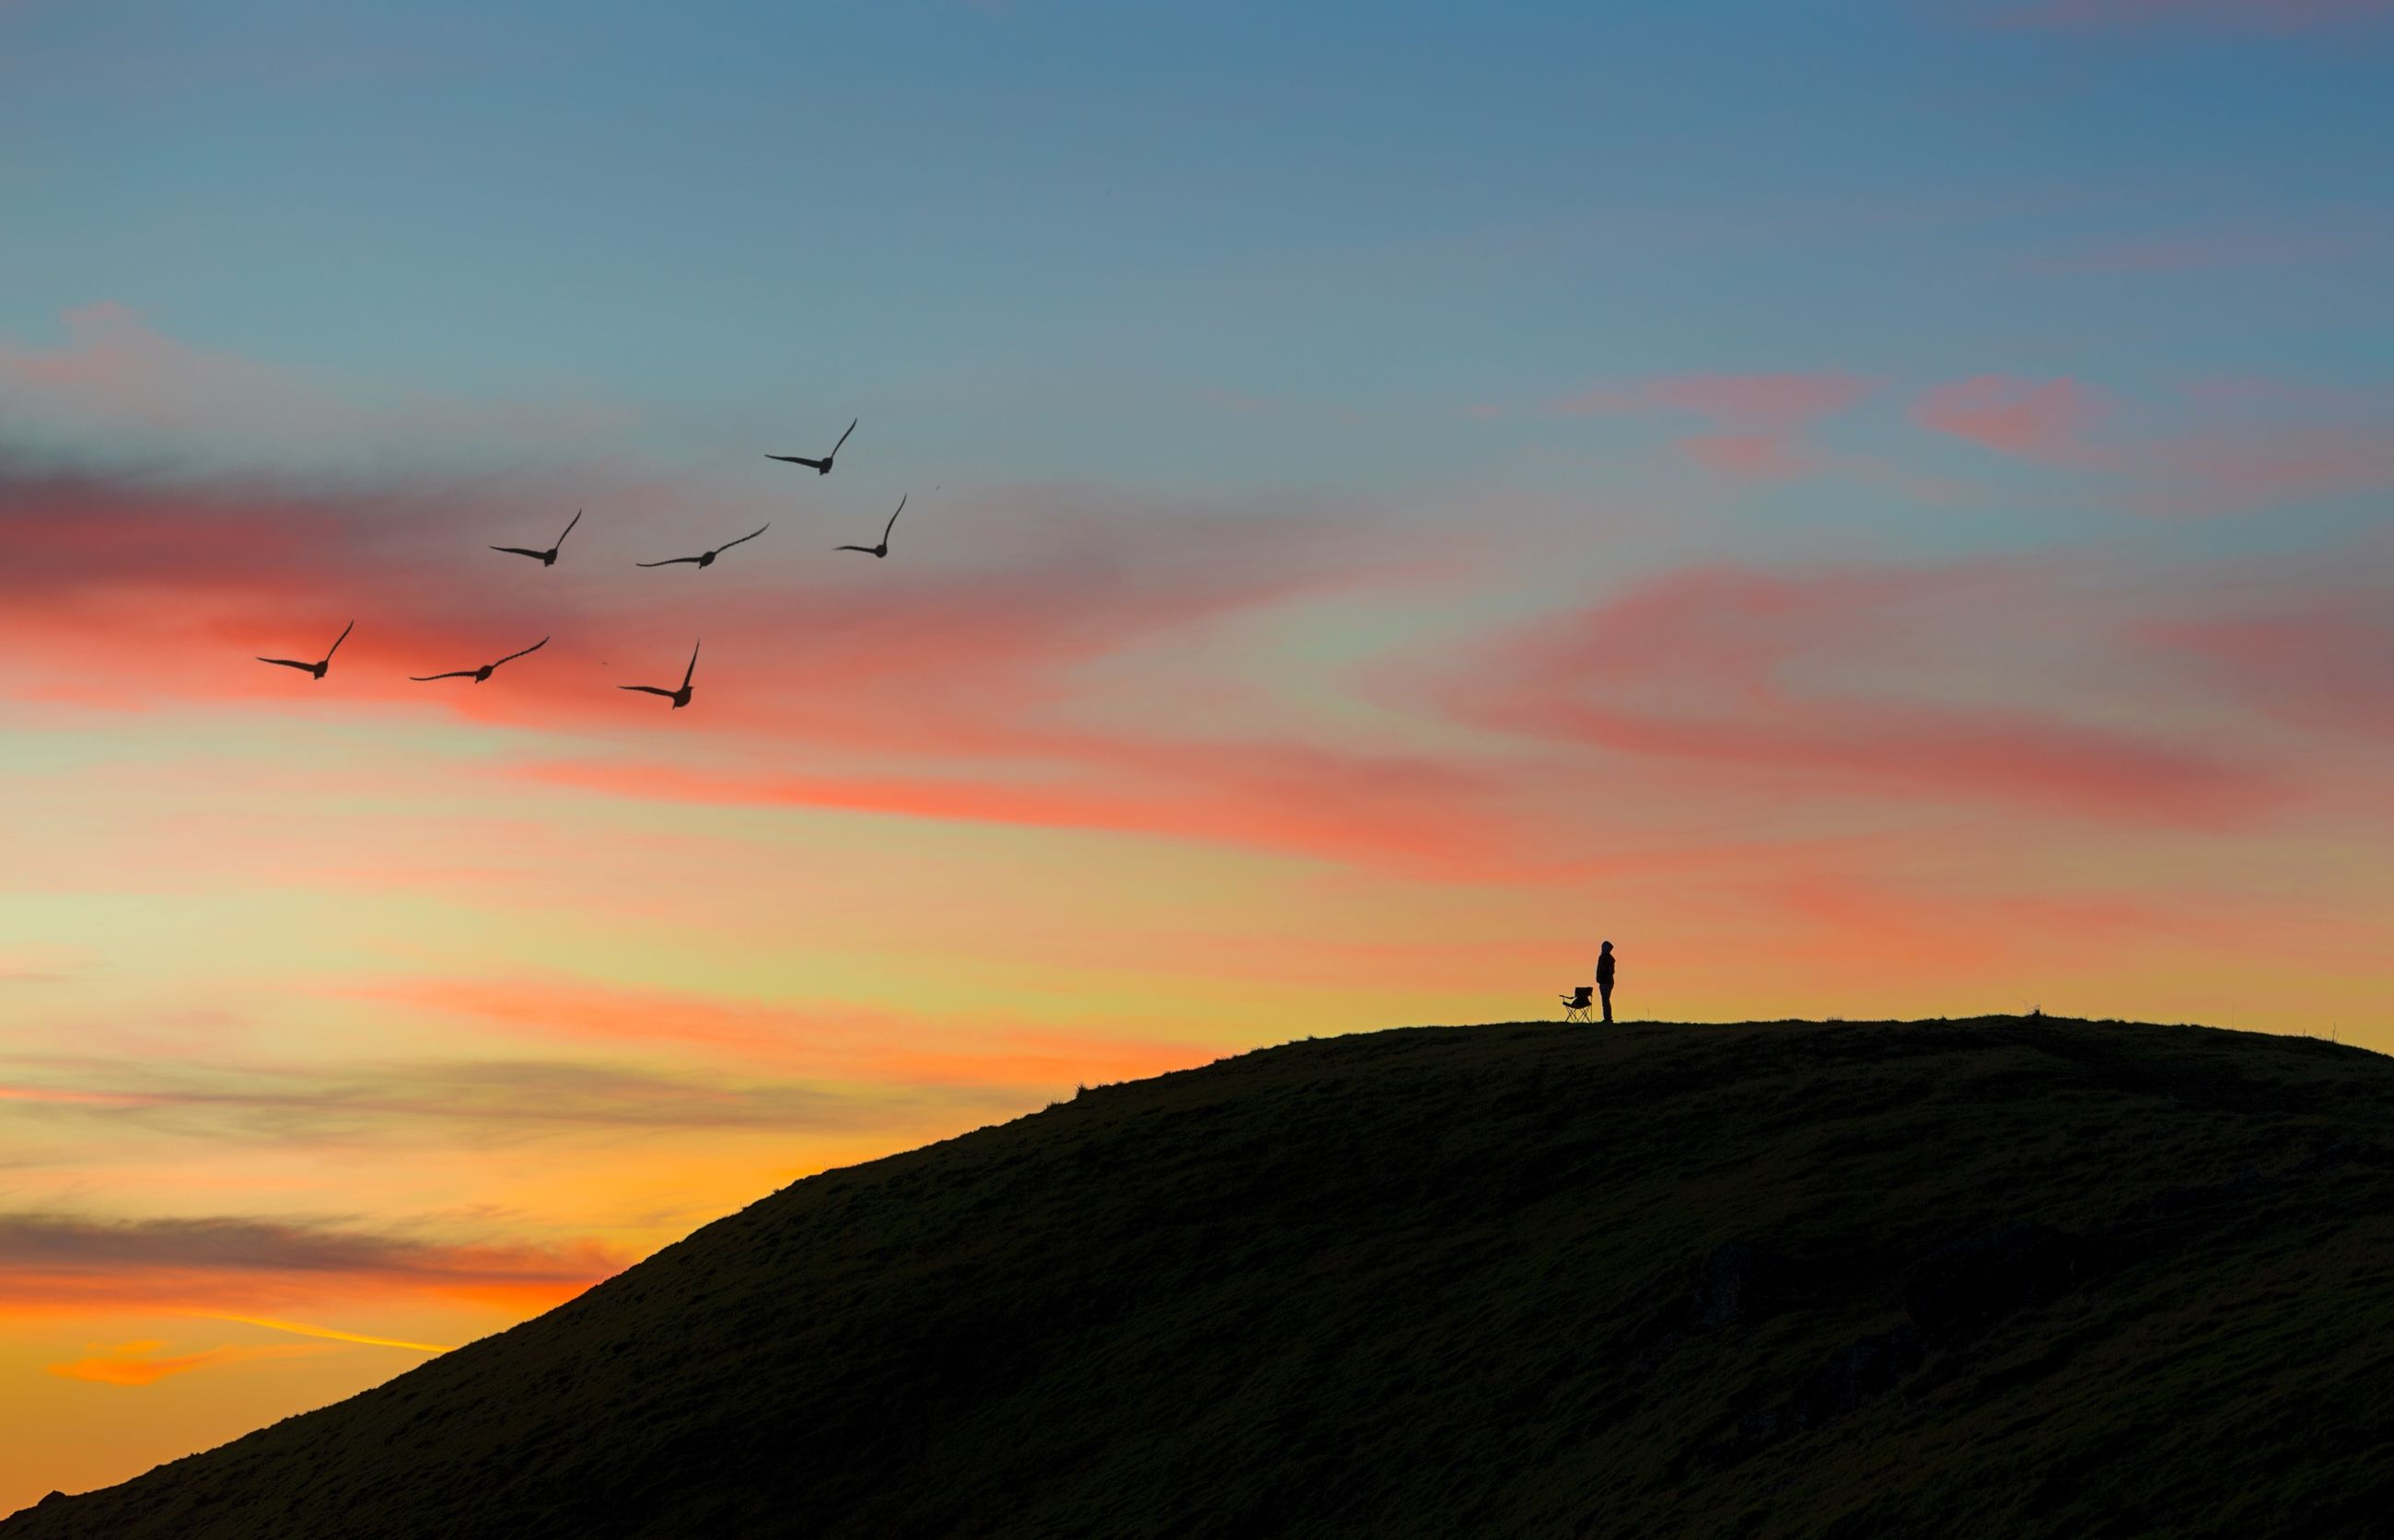 sunset, silhouette, bird, flying, sky, animal themes, scenics, beauty in nature, tranquil scene, animals in the wild, mountain, orange color, tranquility, landscape, nature, low angle view, cloud - sky, wildlife